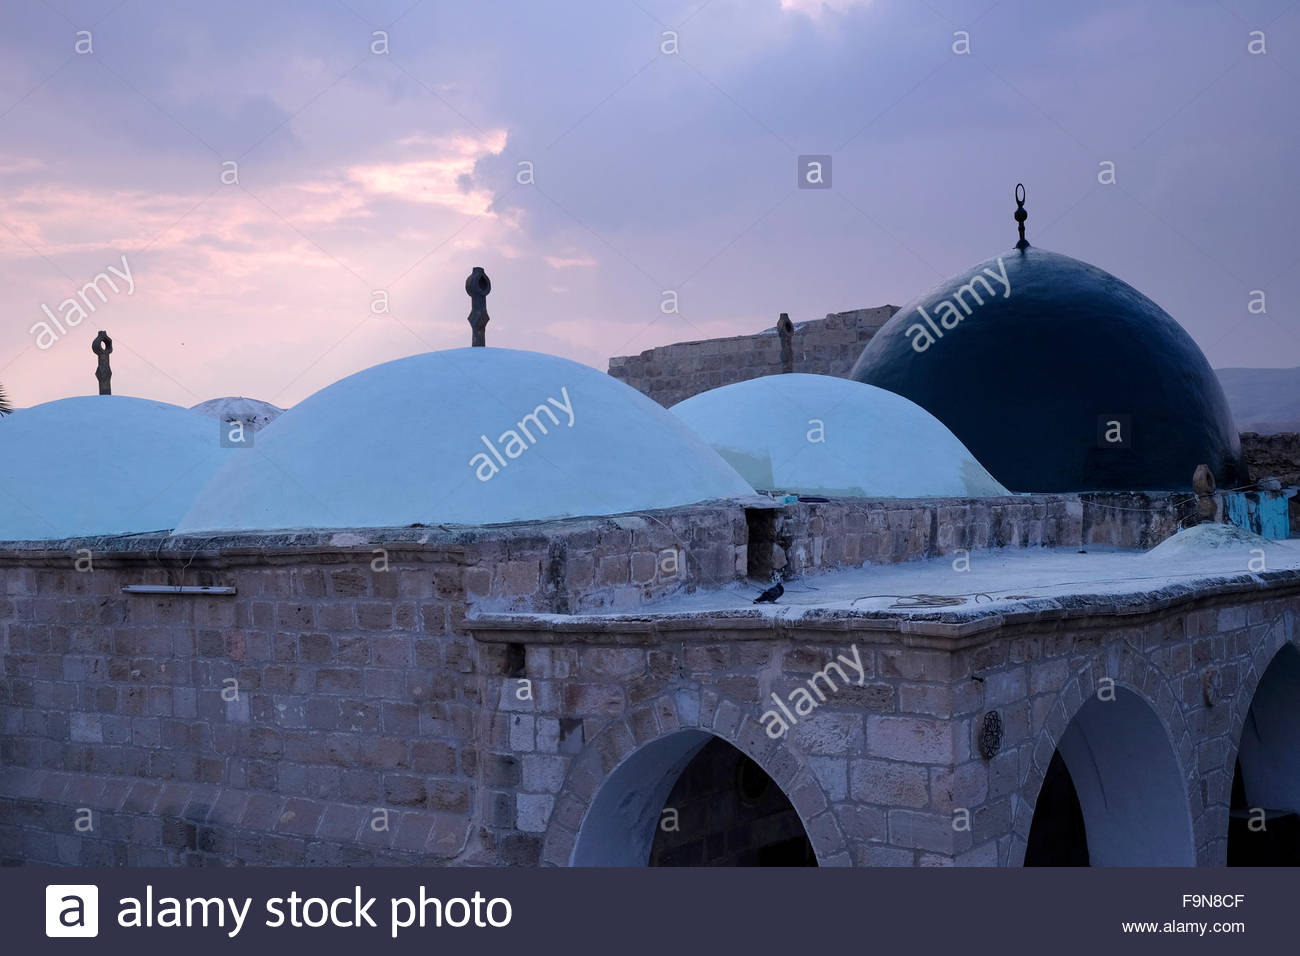 Rooftop of Nabi or Nebi Musa mosque which according to Moslem tradition was the burial place of Moses in Judean - Stock Image